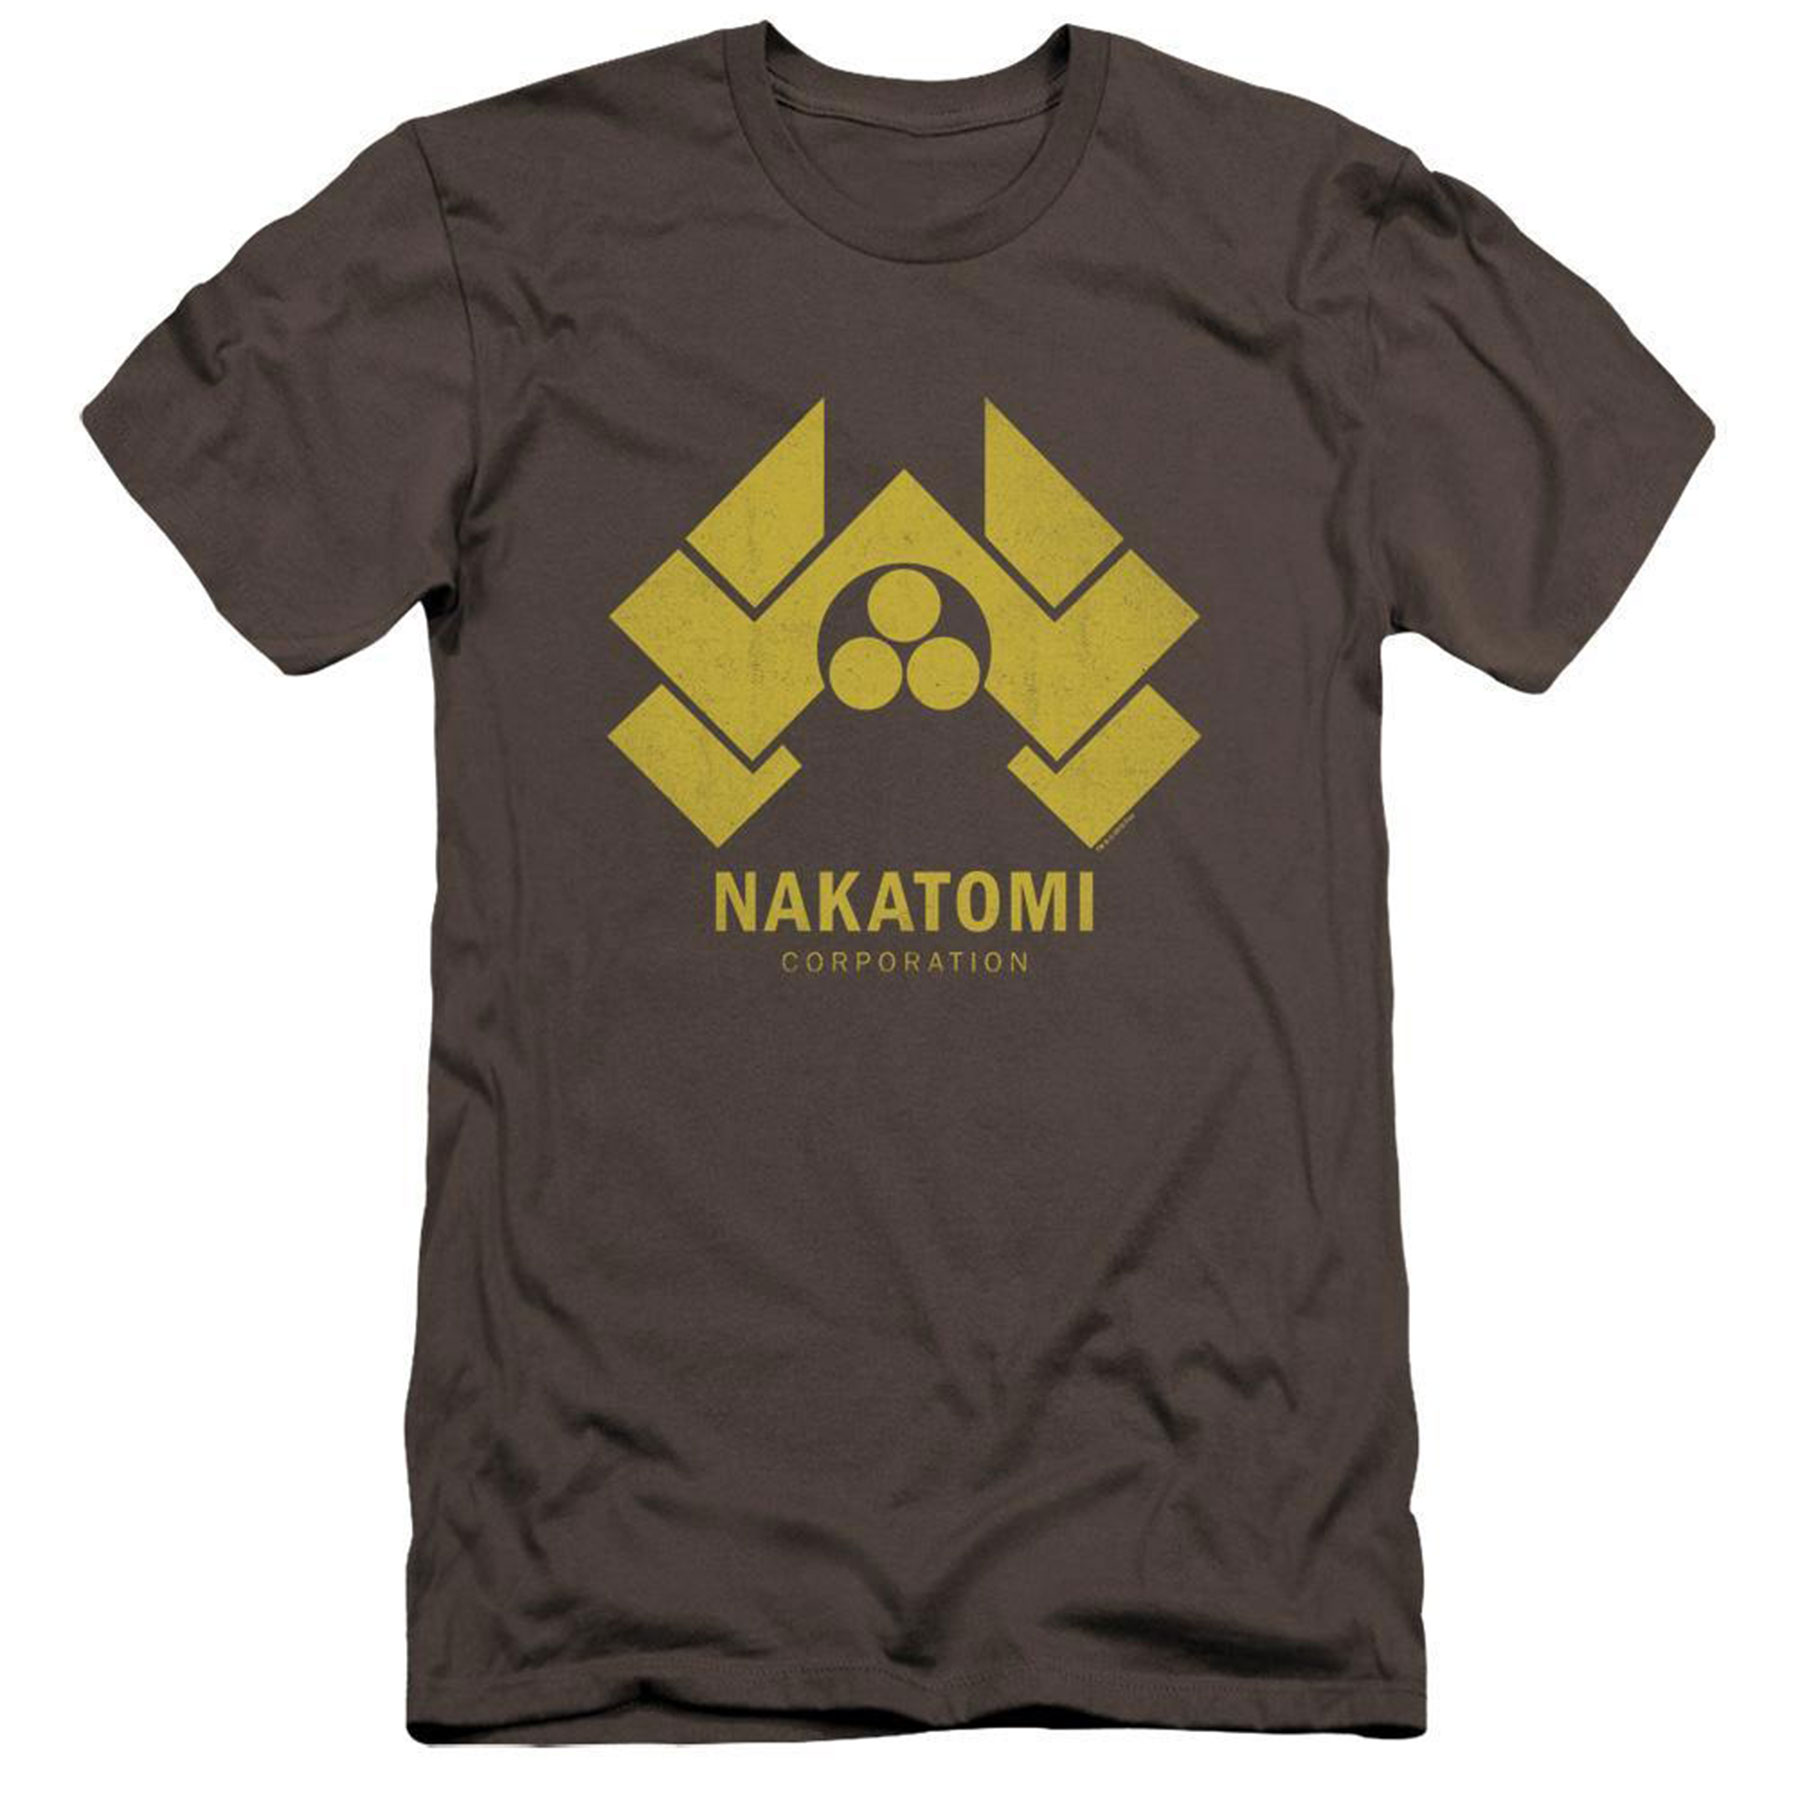 Die Hard giftsNakatomi Corp Brown Tee (Available at Shop.FoxMovies)